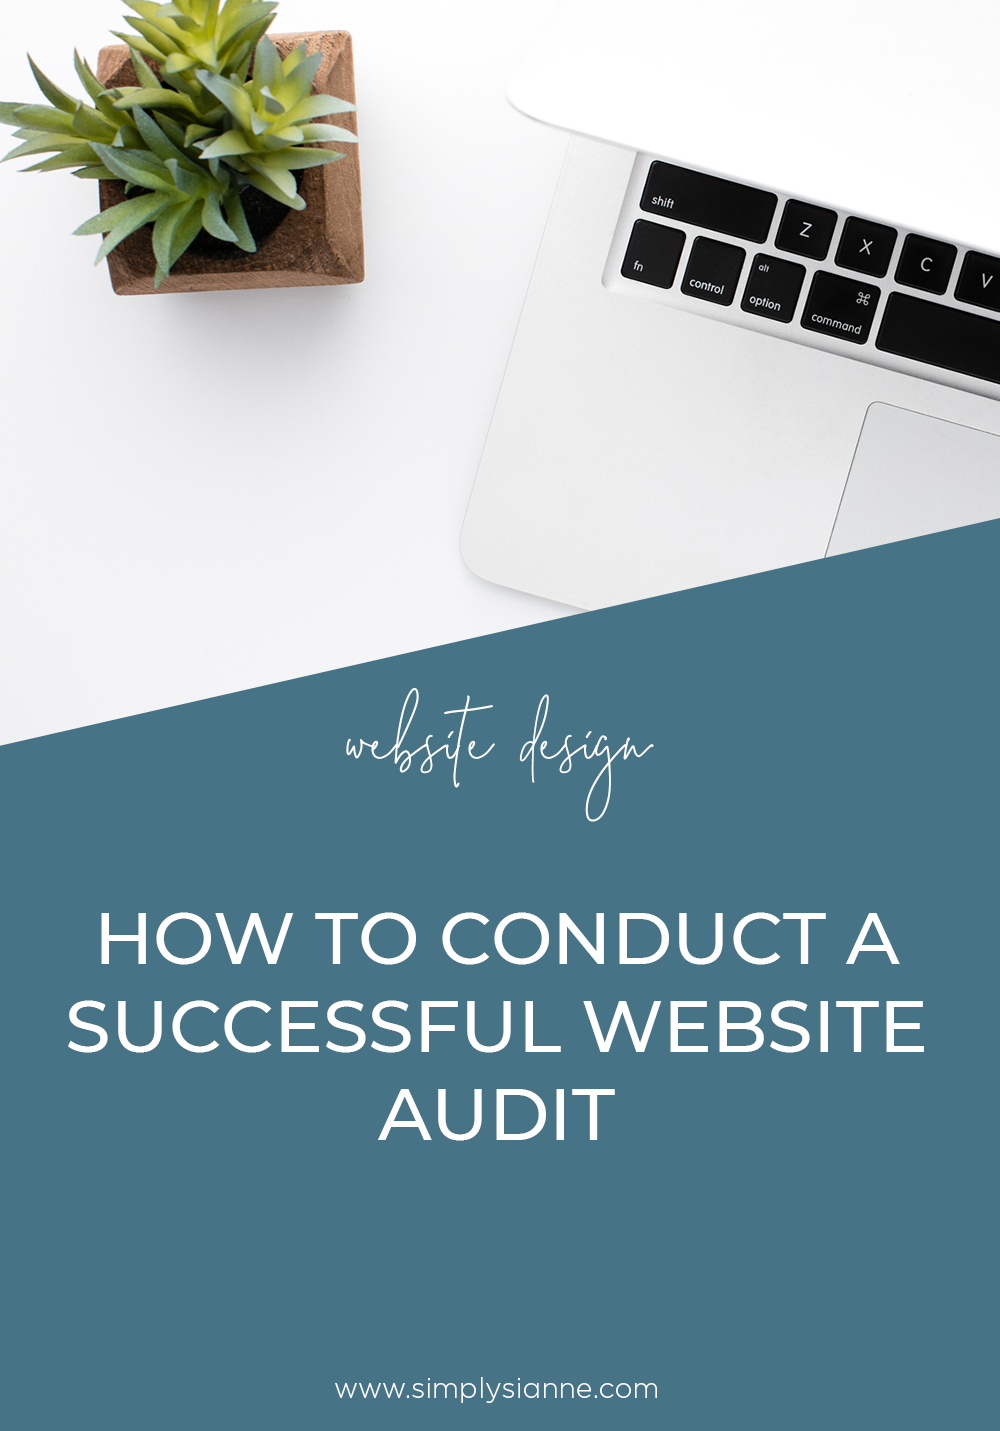 How To Conduct A Successful Website Audit For Your Business Simply Sianne Diy Web Design What Is Marketing Creative Entrepreneur Marketing